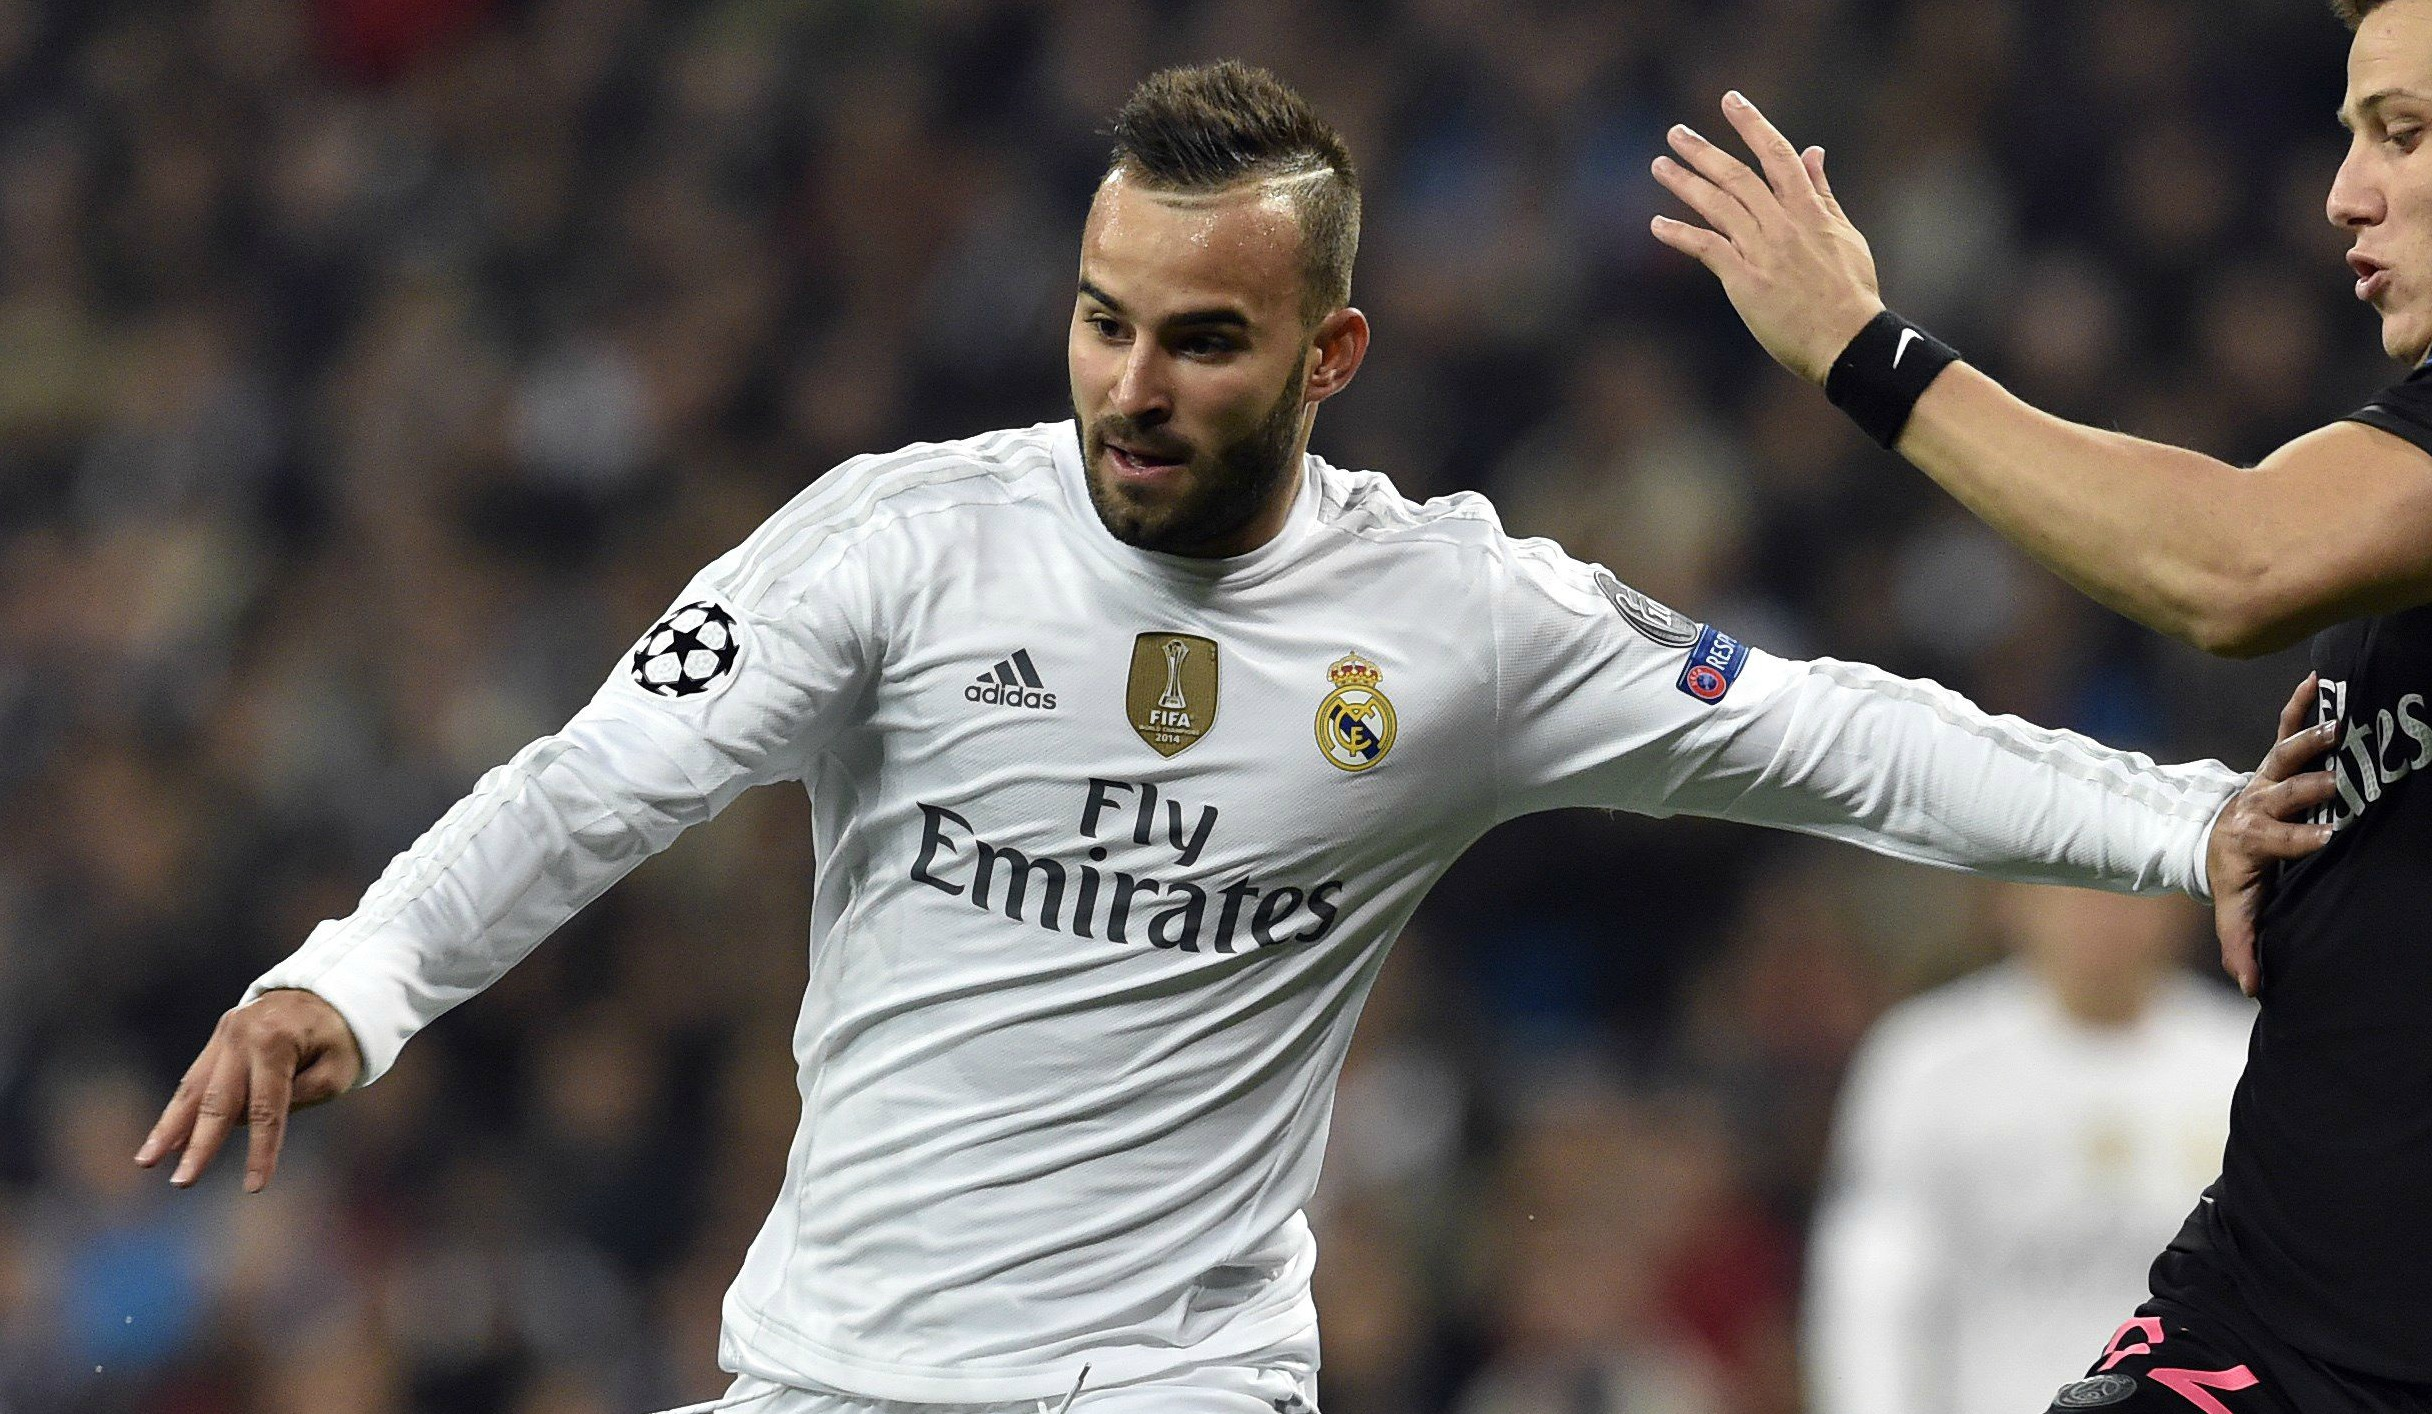 Jese Rodriguez has struggled to hold down a first-team place at Real. (Picture: Getty Images)